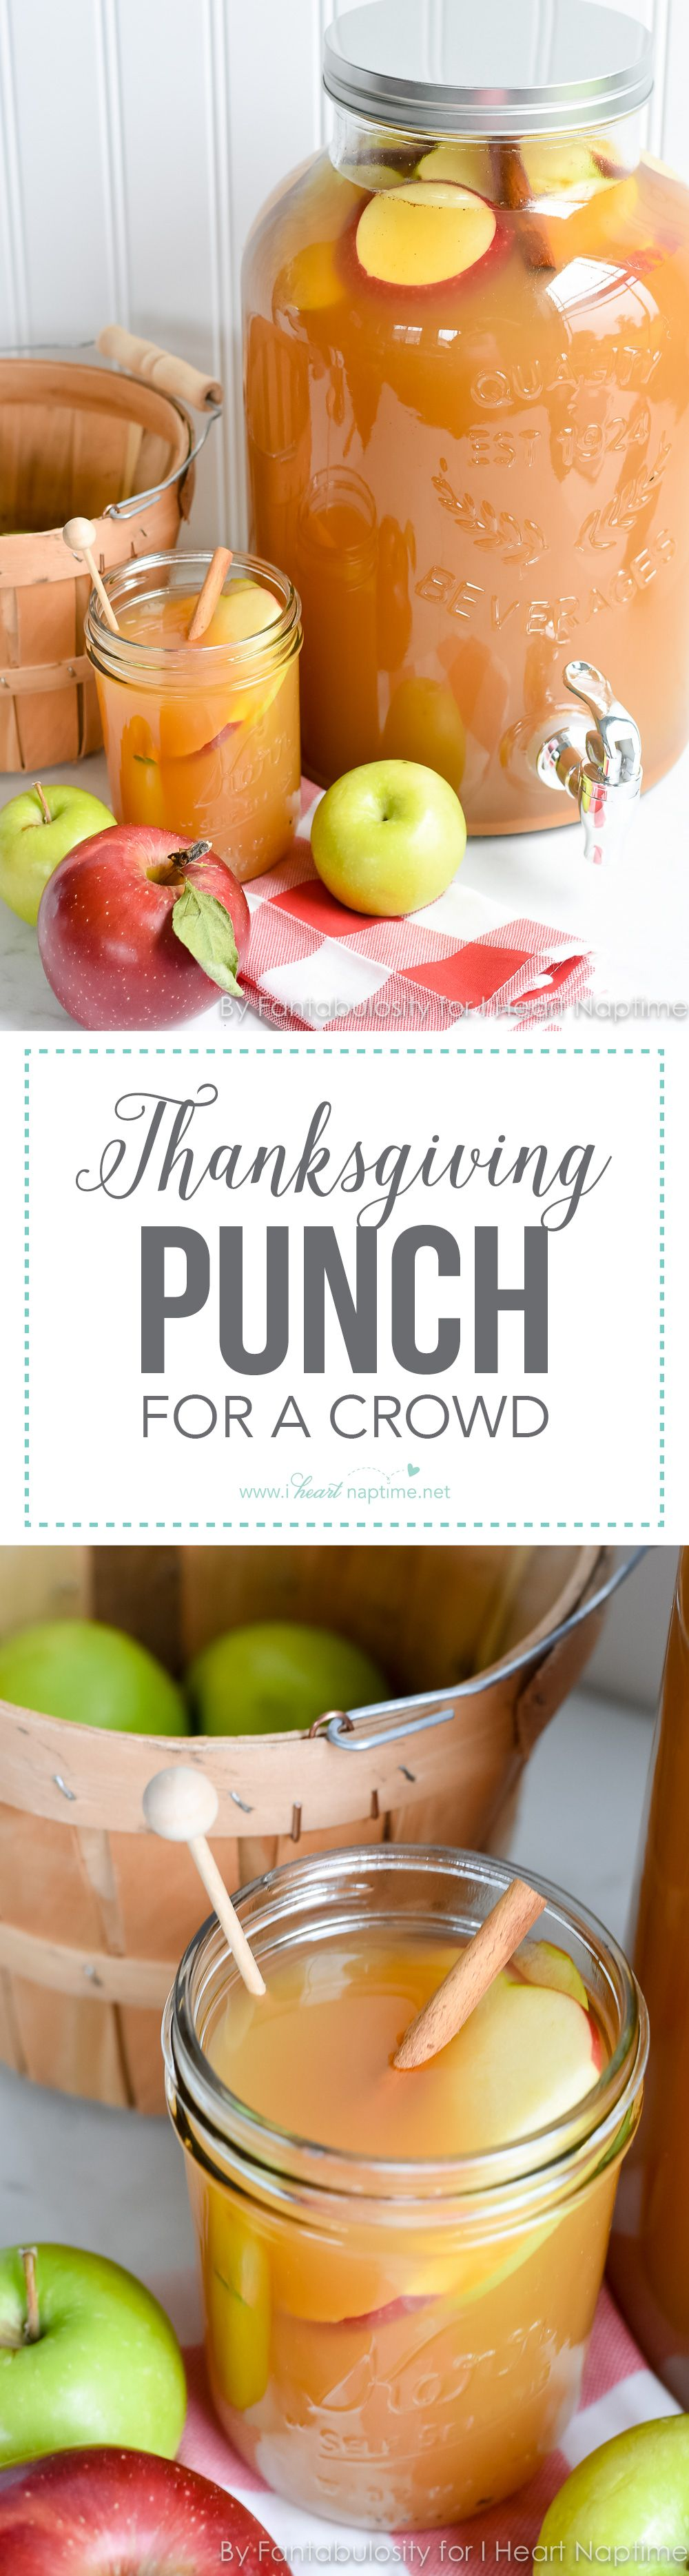 Thanksgiving Punch for a Crowd (3-ingredients!) - I Heart Naptime